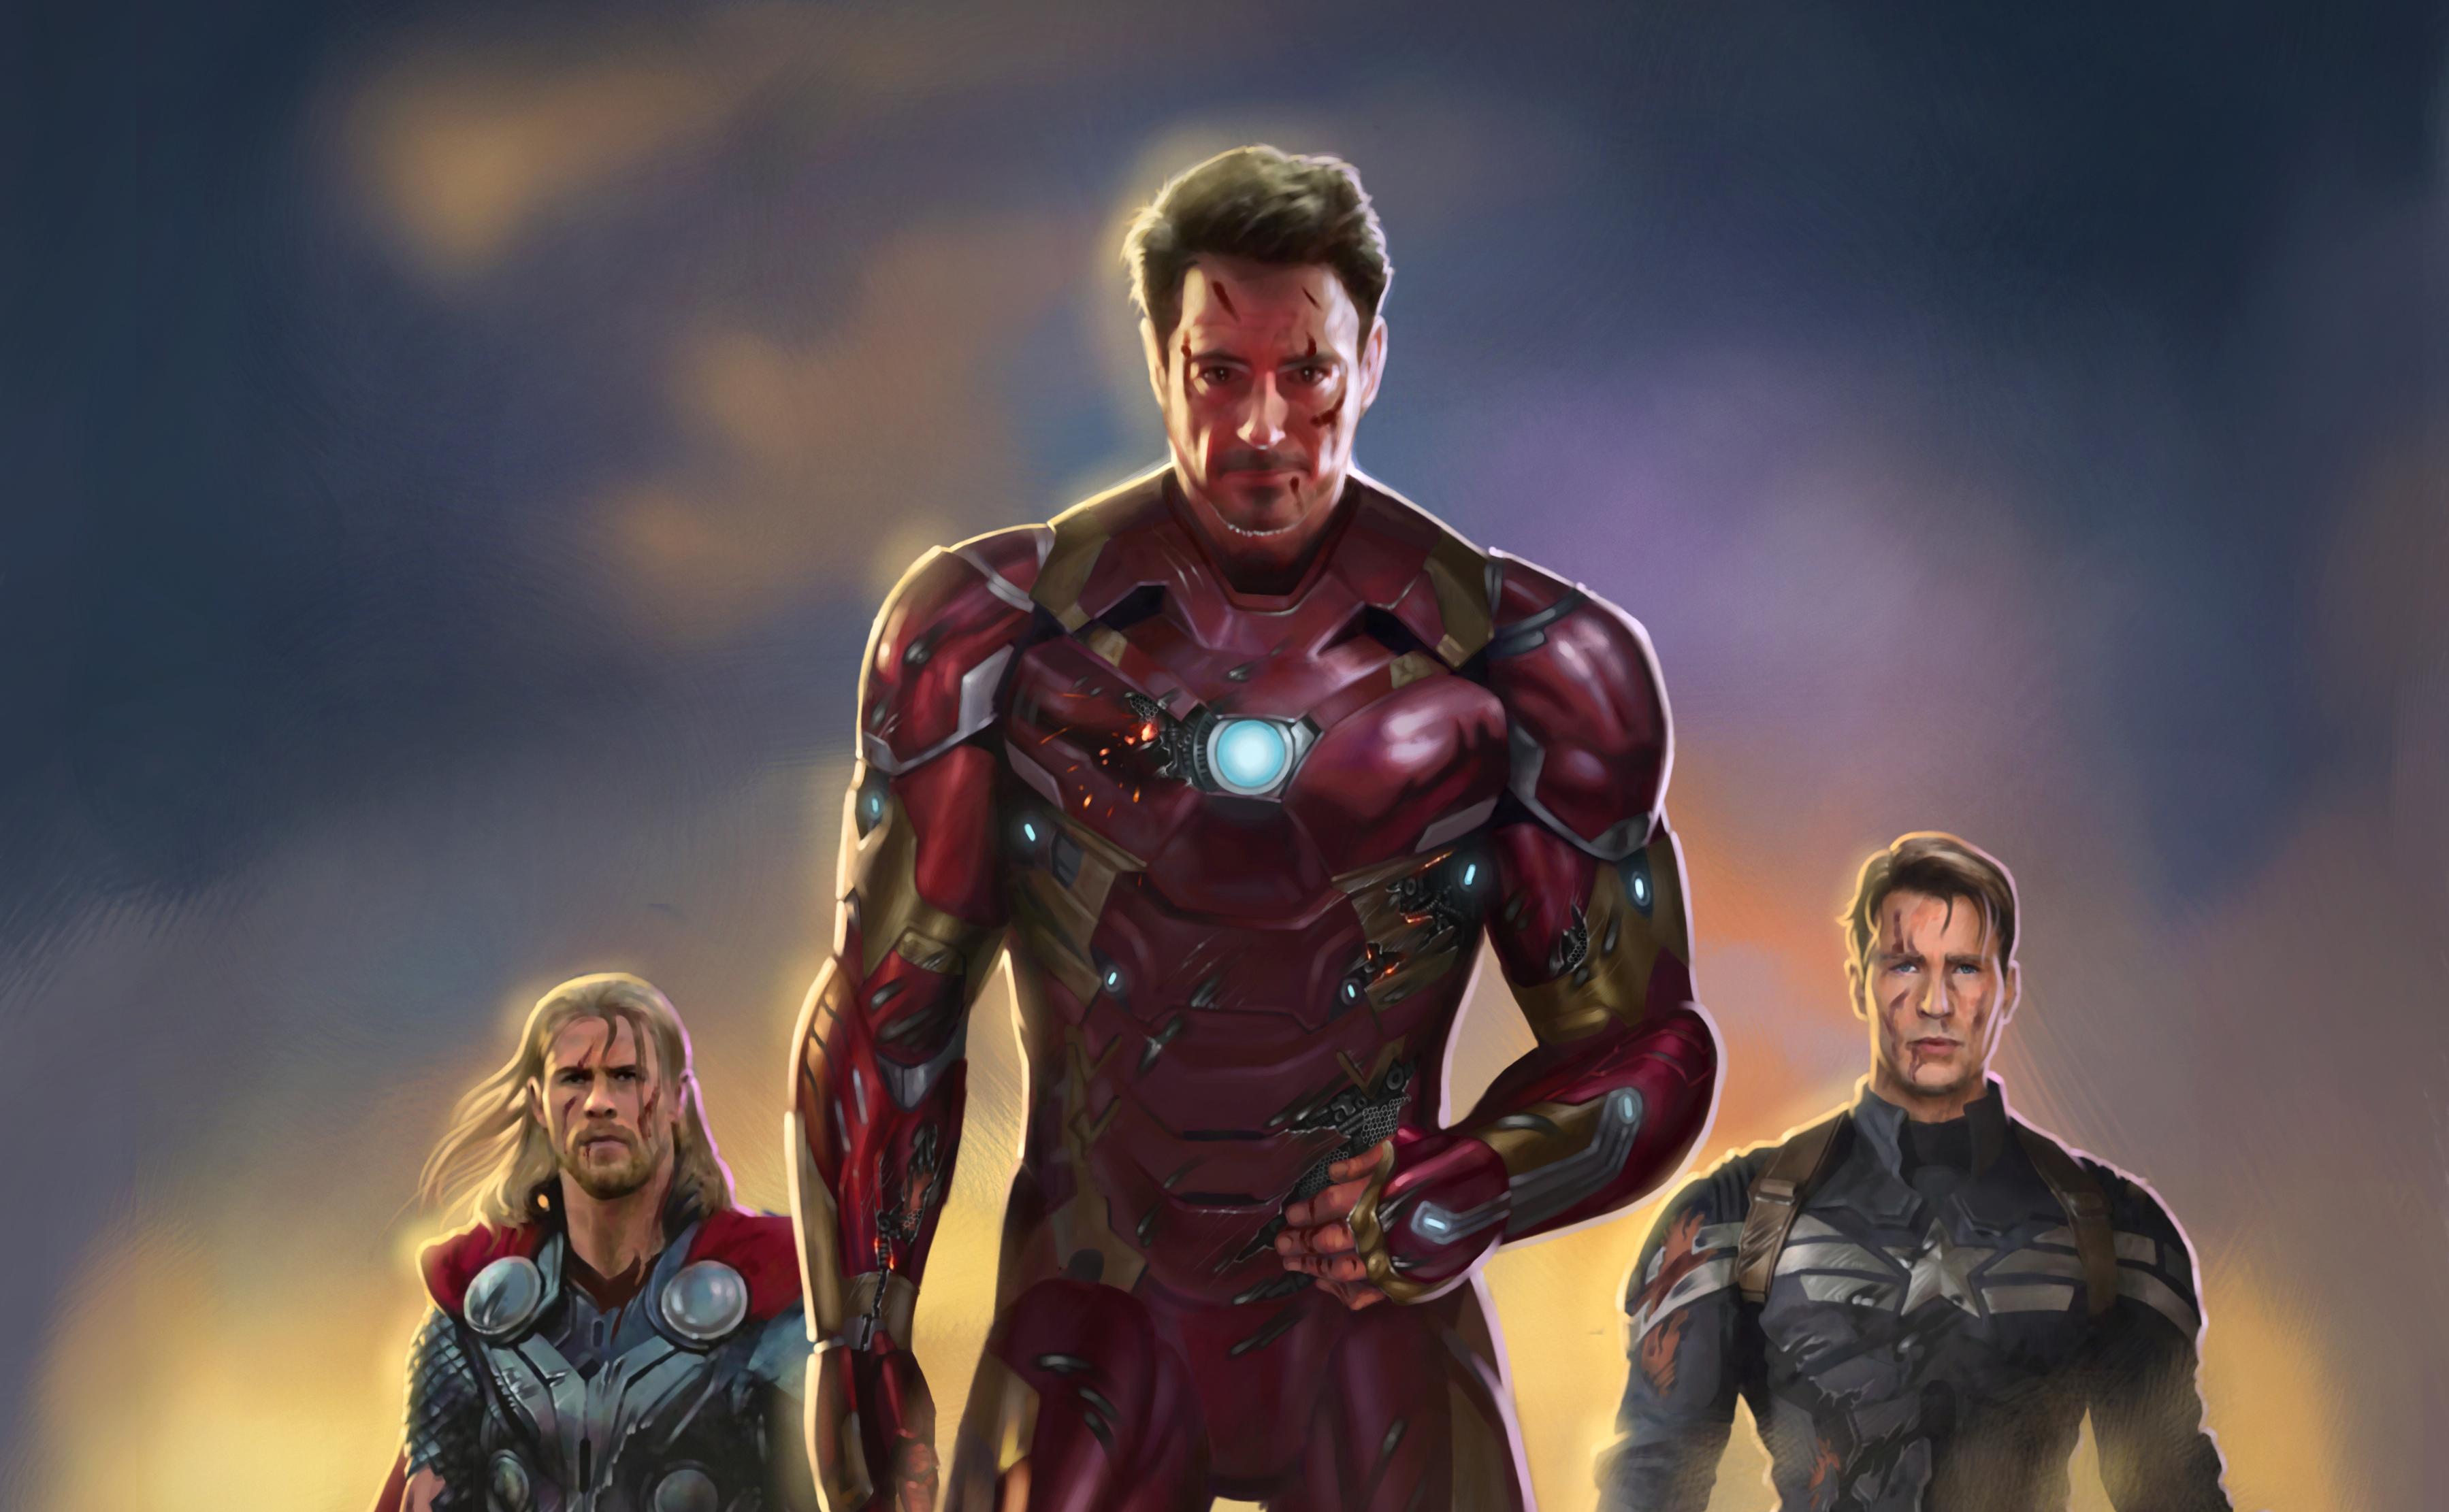 iron man captain america thor fan art, hd superheroes, 4k wallpapers